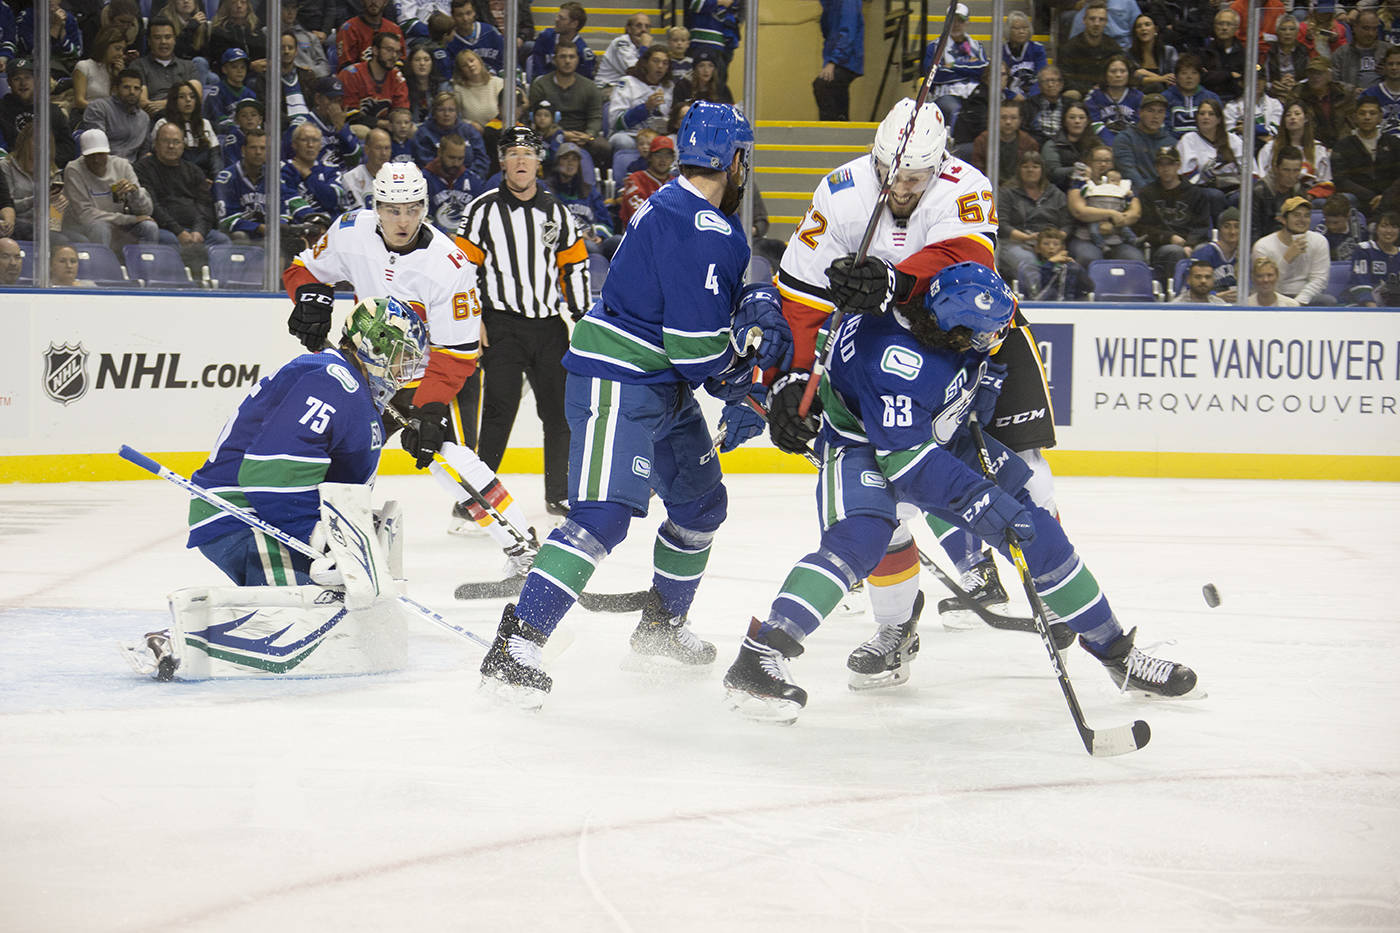 Photos Vancouver Canucks Face Off Against Calgary Flames In Victoria Victoria News